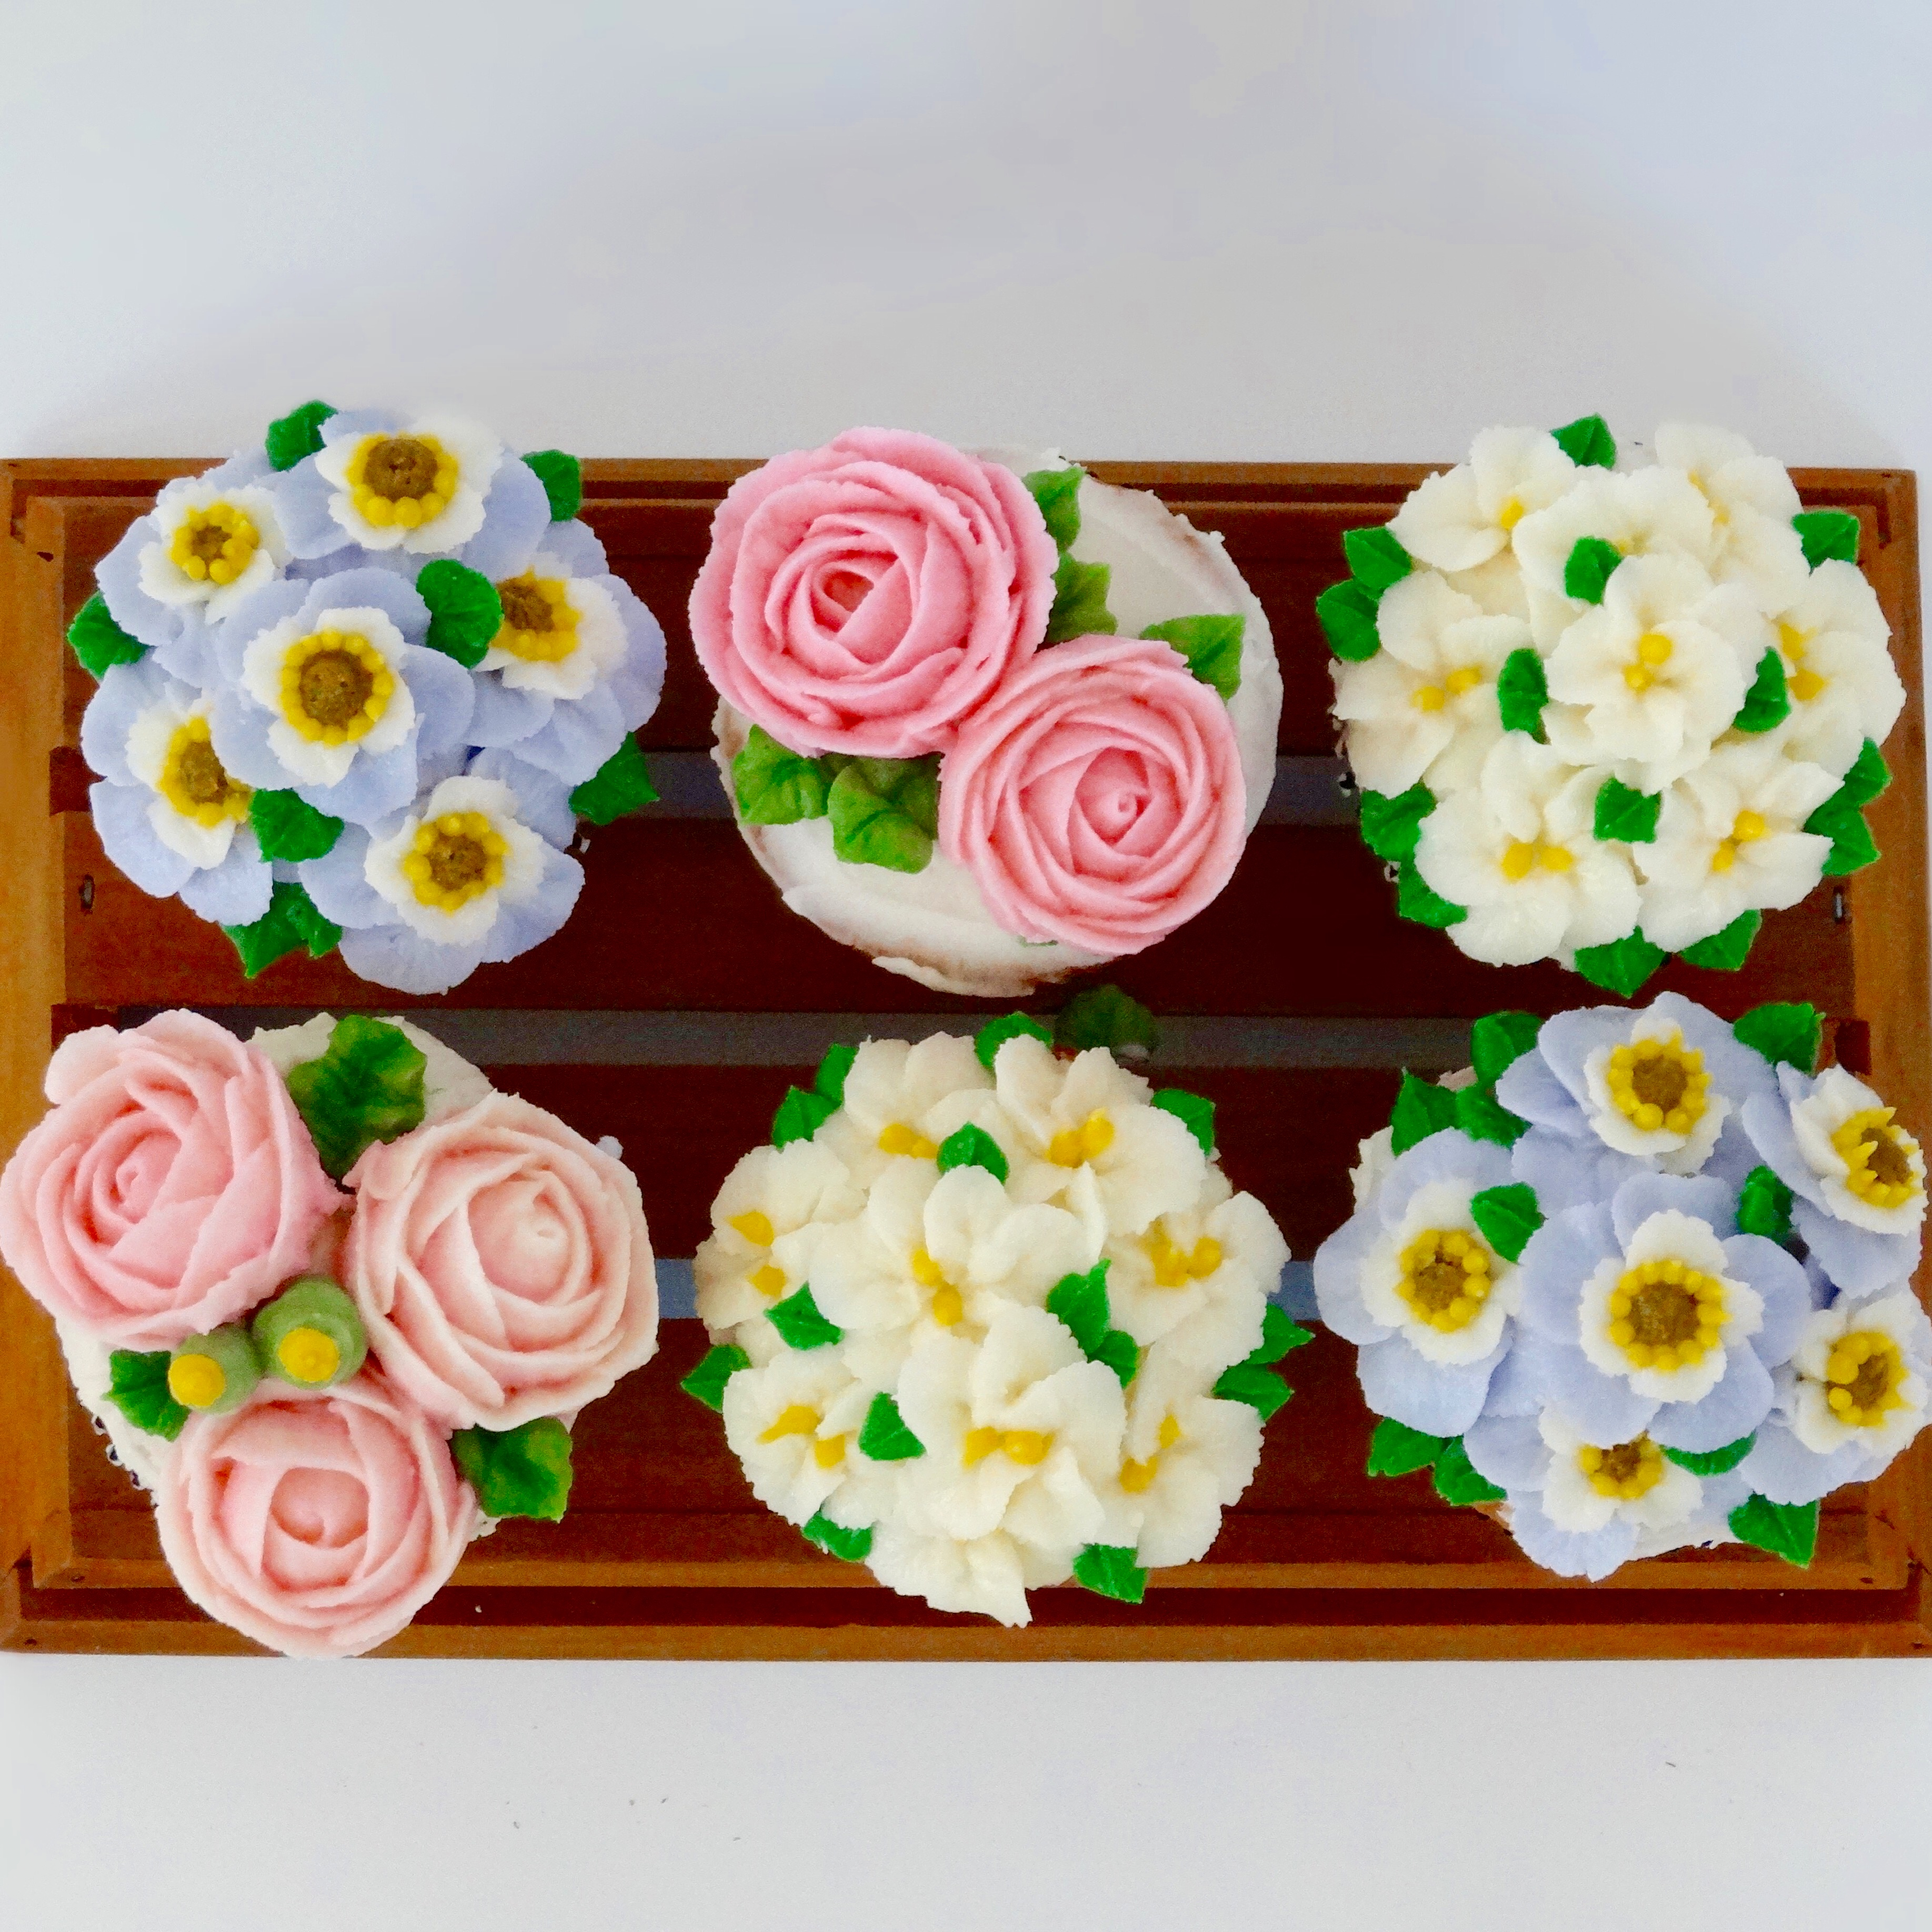 Vanilla cupcakes with buttercream flowers nichalicious baking i saw cake decorating with korean buttercream flowers on pinterest and they looked so beautiful i had to try it i checked out the tutorial on youtube and izmirmasajfo